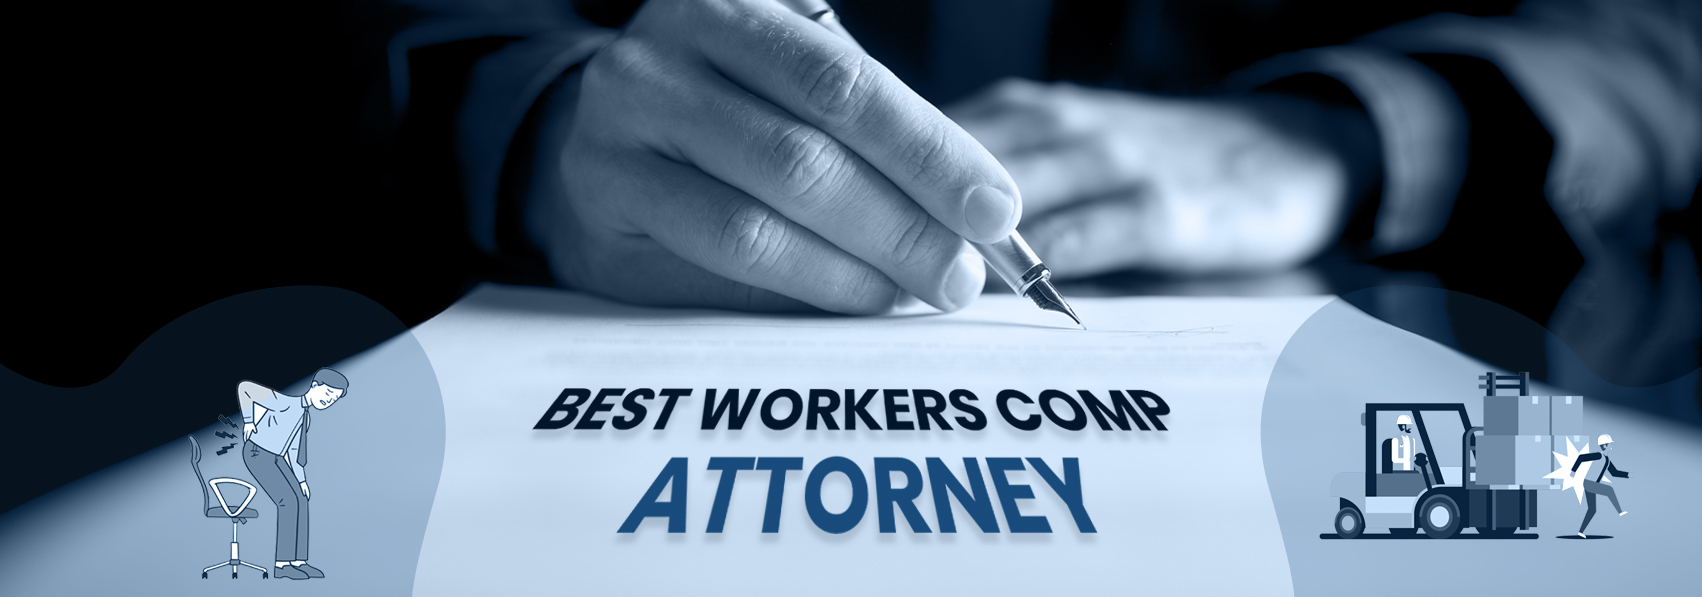 Best Workers Comp Attorney Riverside